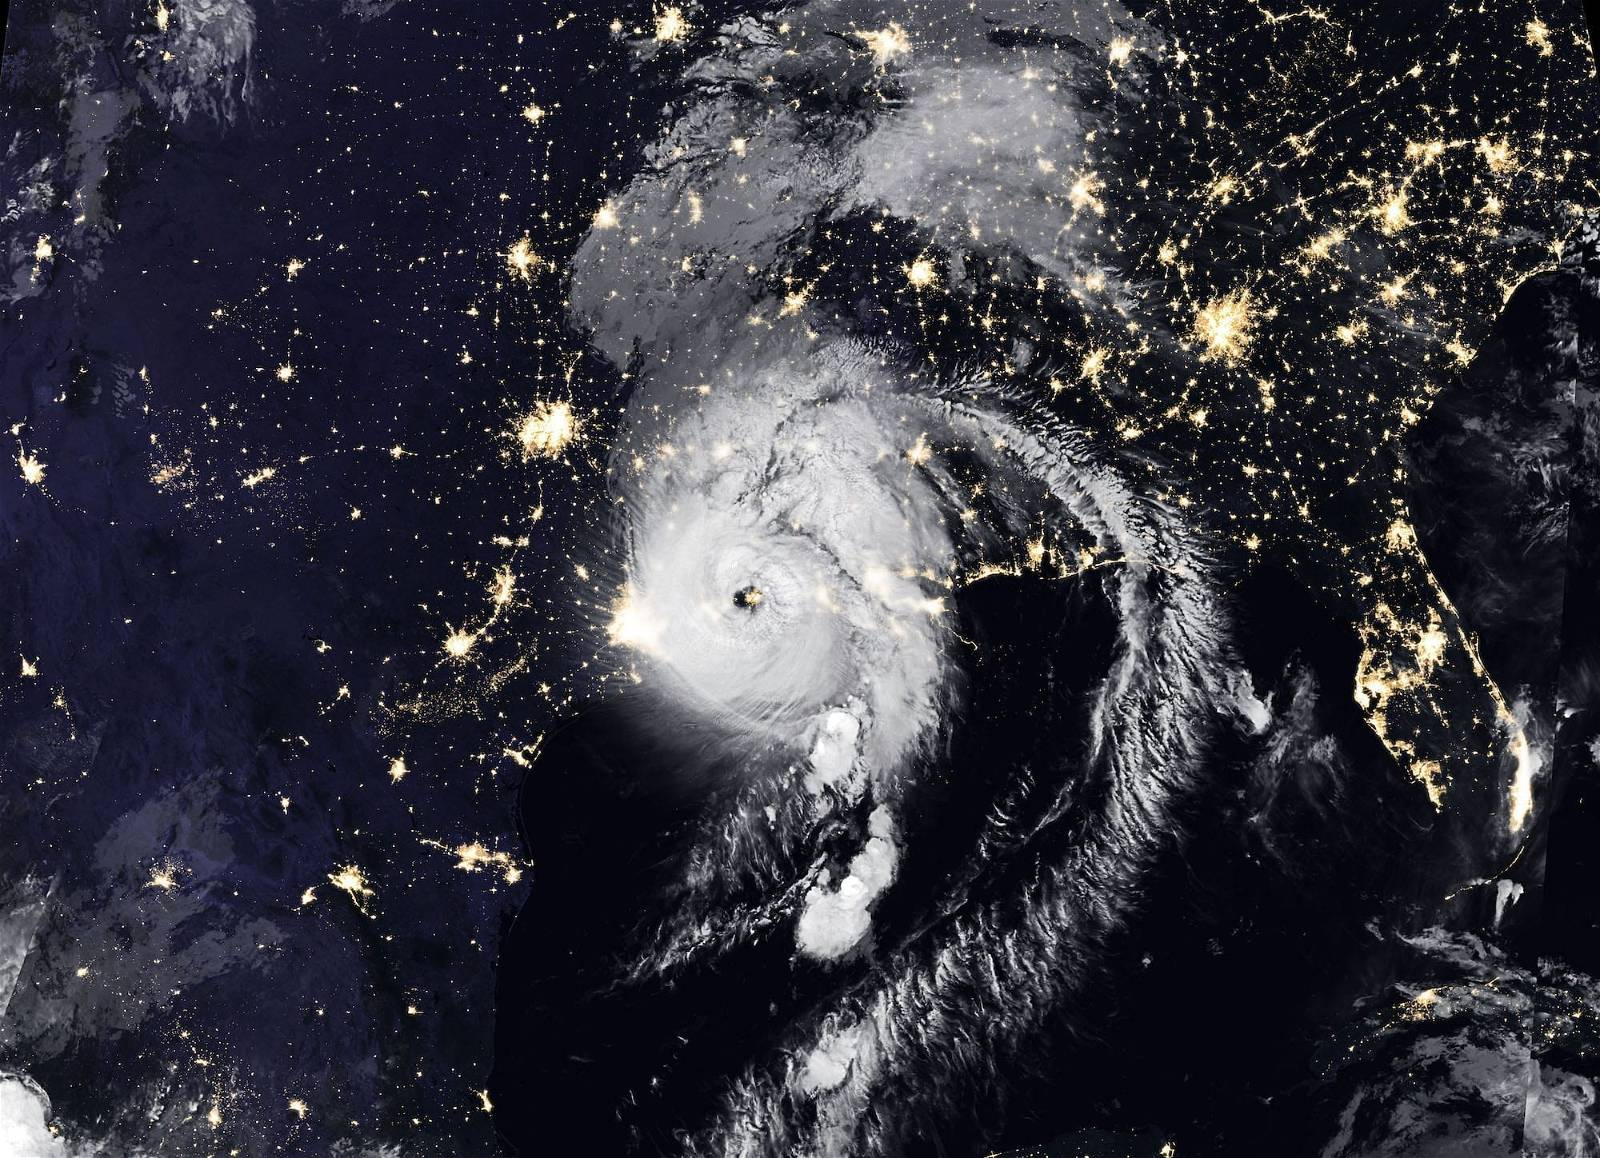 After making landfall near Cameron, Louisiana, as a category 4 storm, Hurricane Laura continued to move northward over western Louisiana. The Visible Infrared Imaging Radiometer Suite (VIIRS) on NOAA-20 acquired this image of Hurricane Laura at 2:50 a.m. Central Daylight Time on August 27, 2020, about two hours after the storm made landfall. Clouds are shown in infrared using brightness temperature data, which is useful for distinguishing cooler cloud structures from the warmer surface below. That data is overlaid on composite imagery of city lights from NASA's Black Marble dataset. Credits: NASA's Earth Observatory